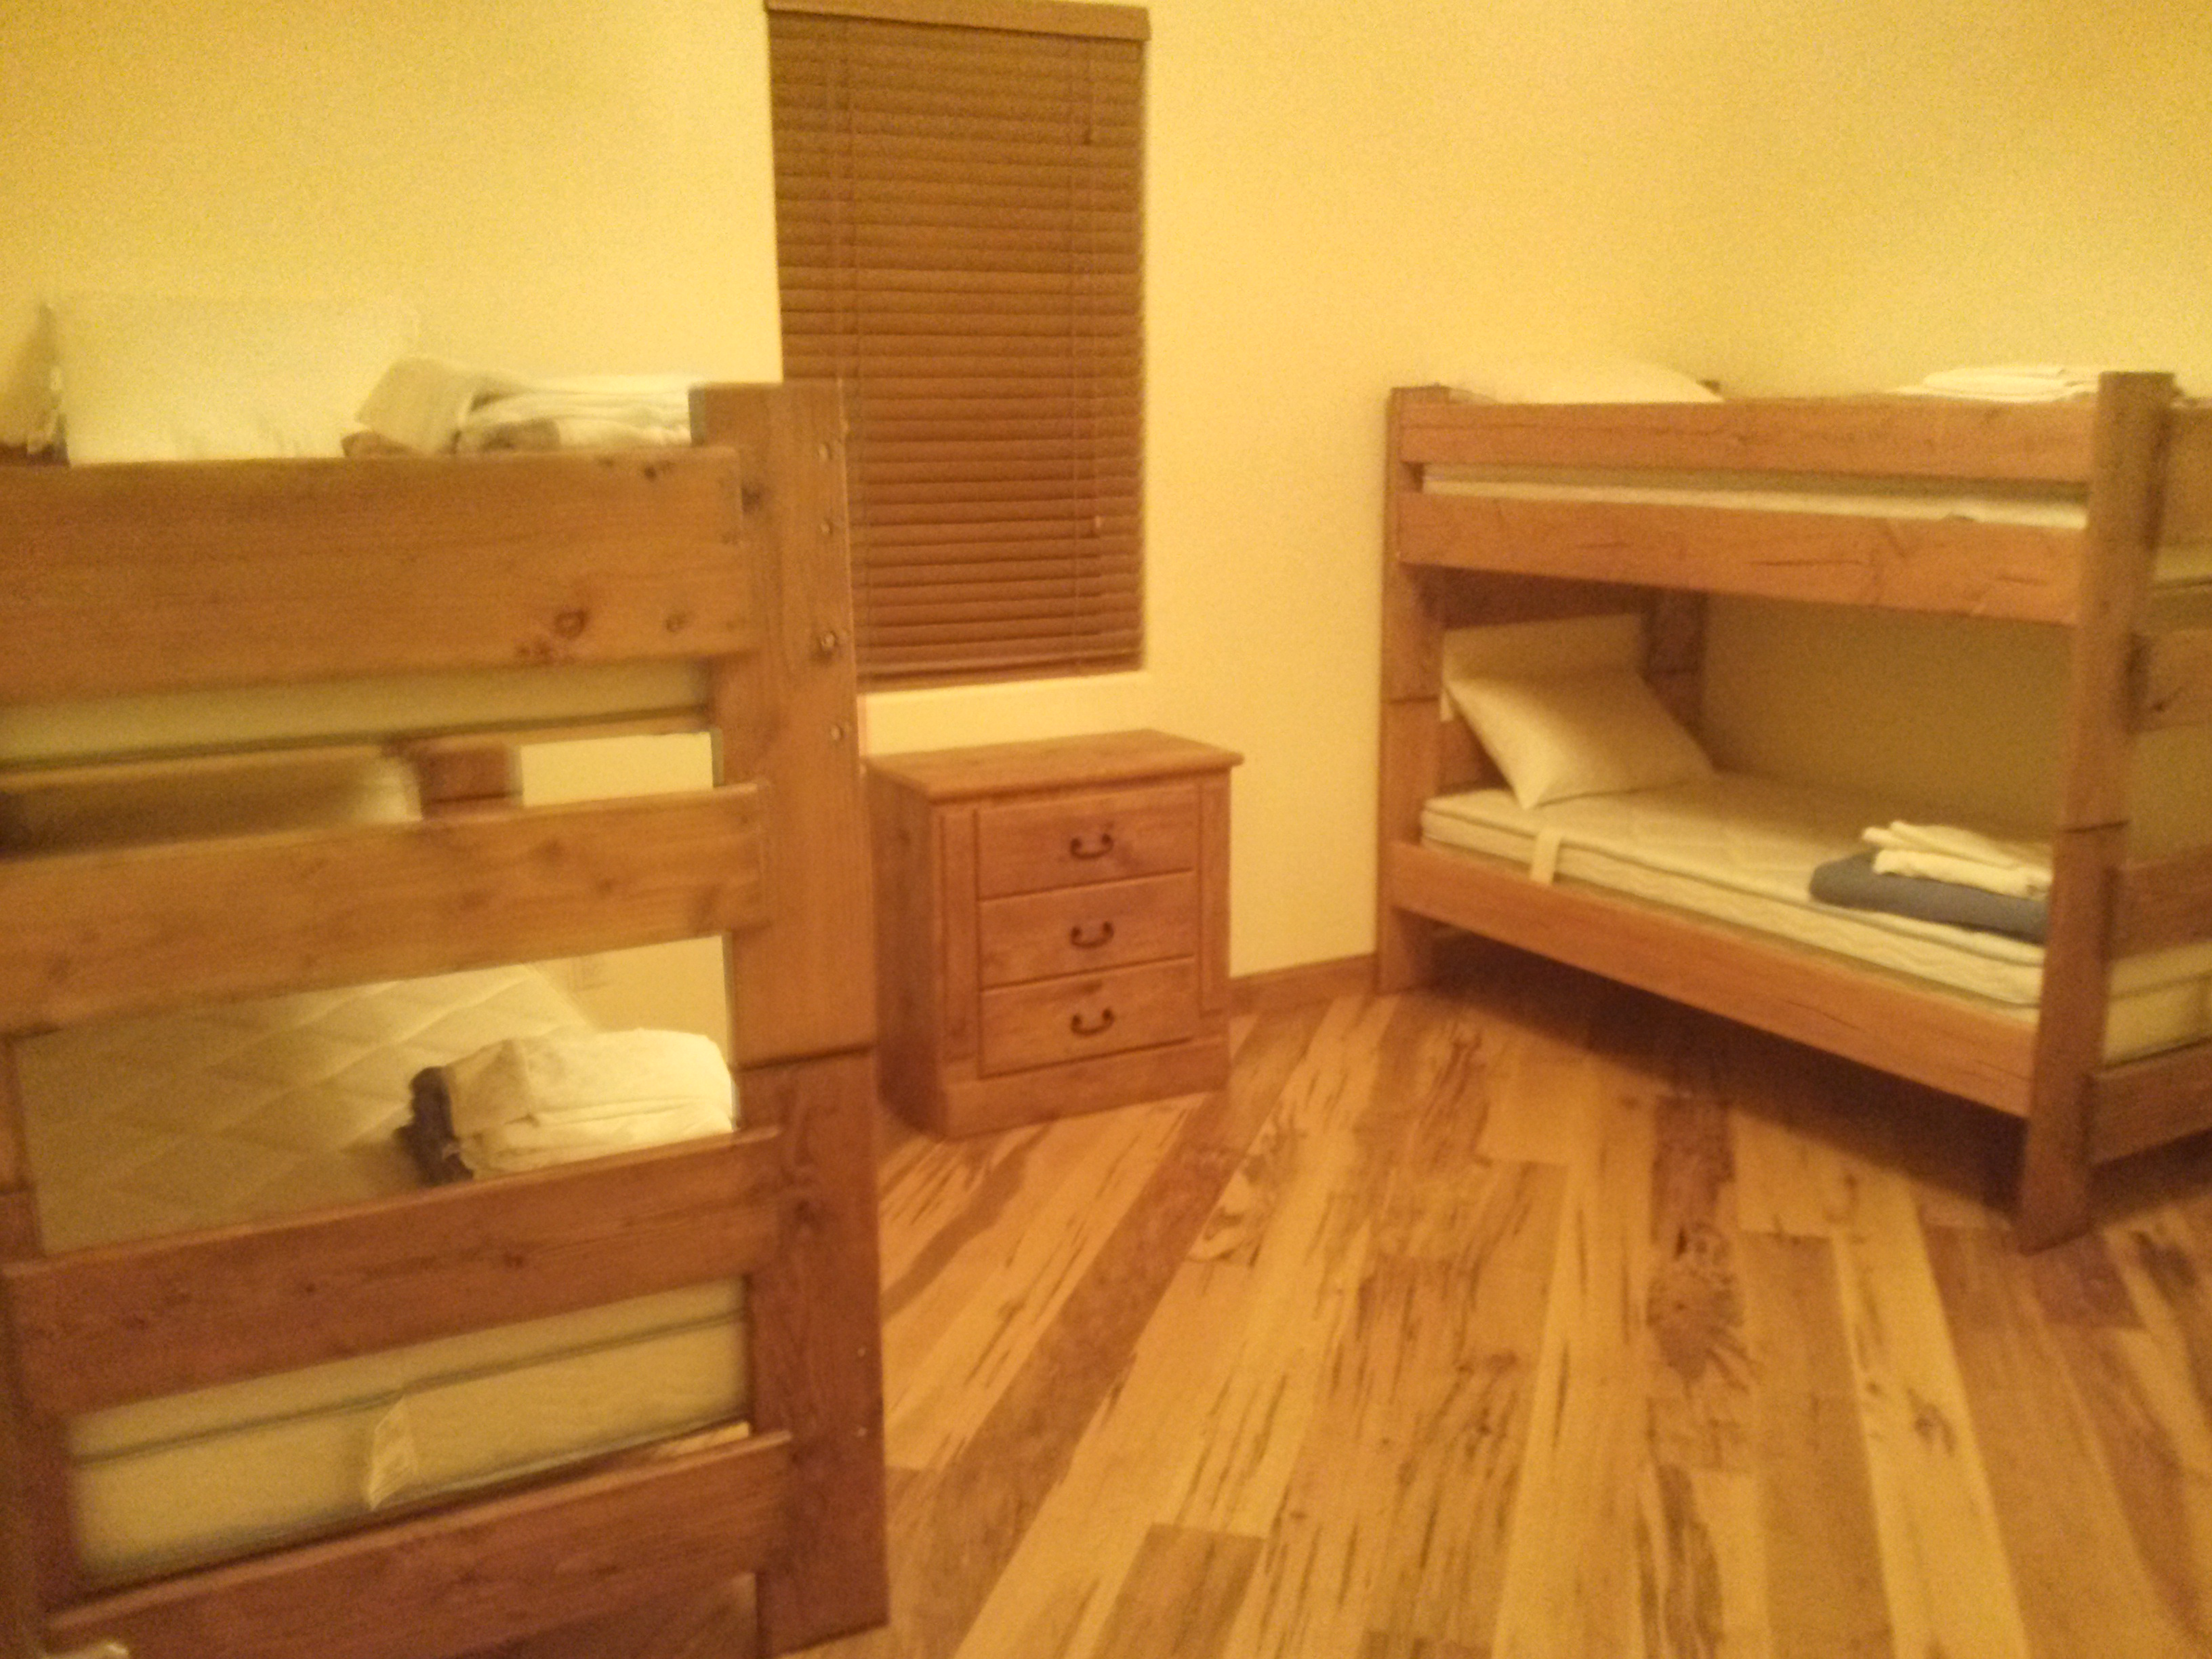 Bedrooms with Bunks